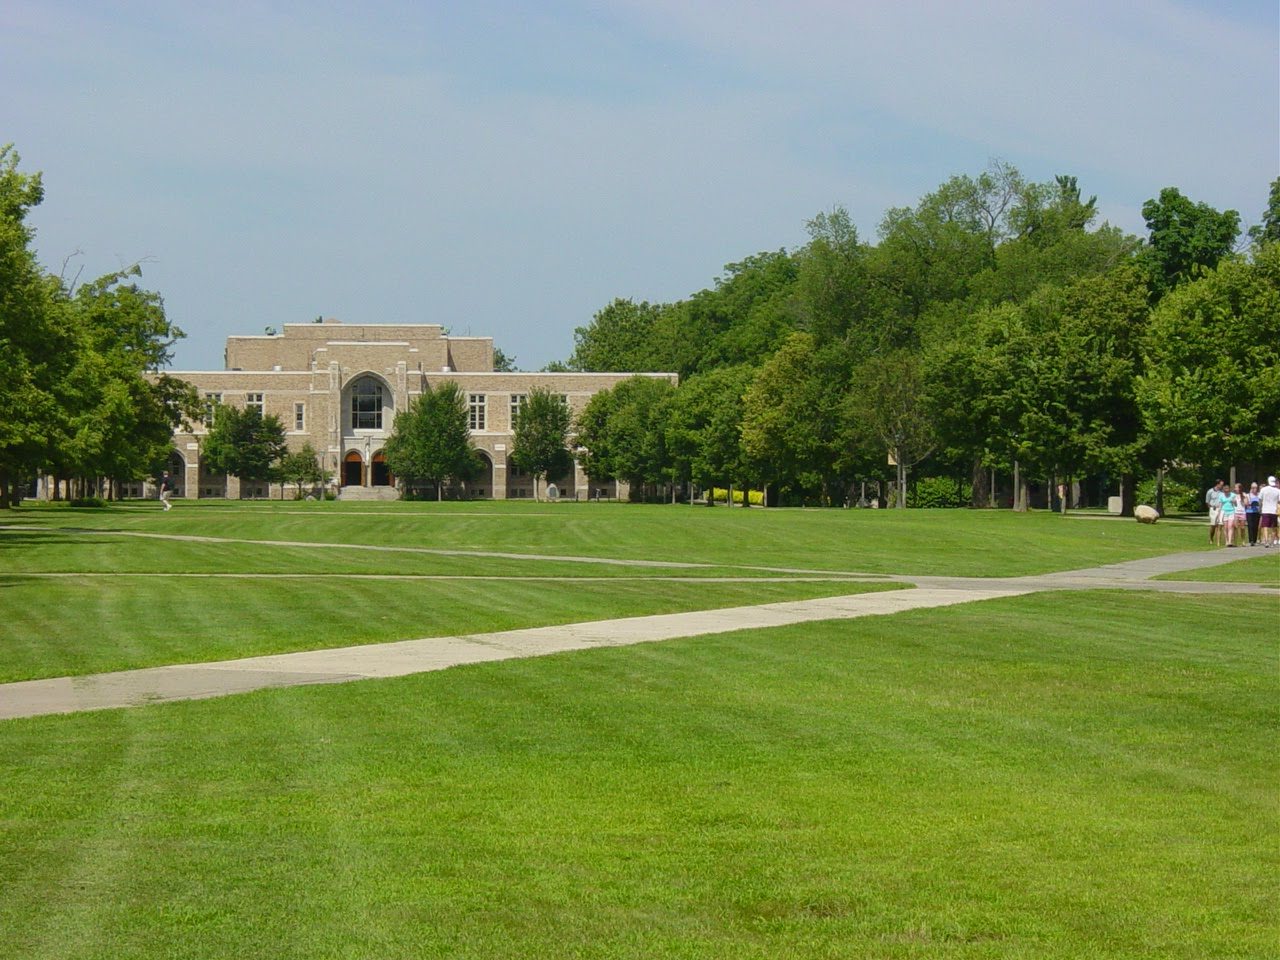 The Rock and the Quad